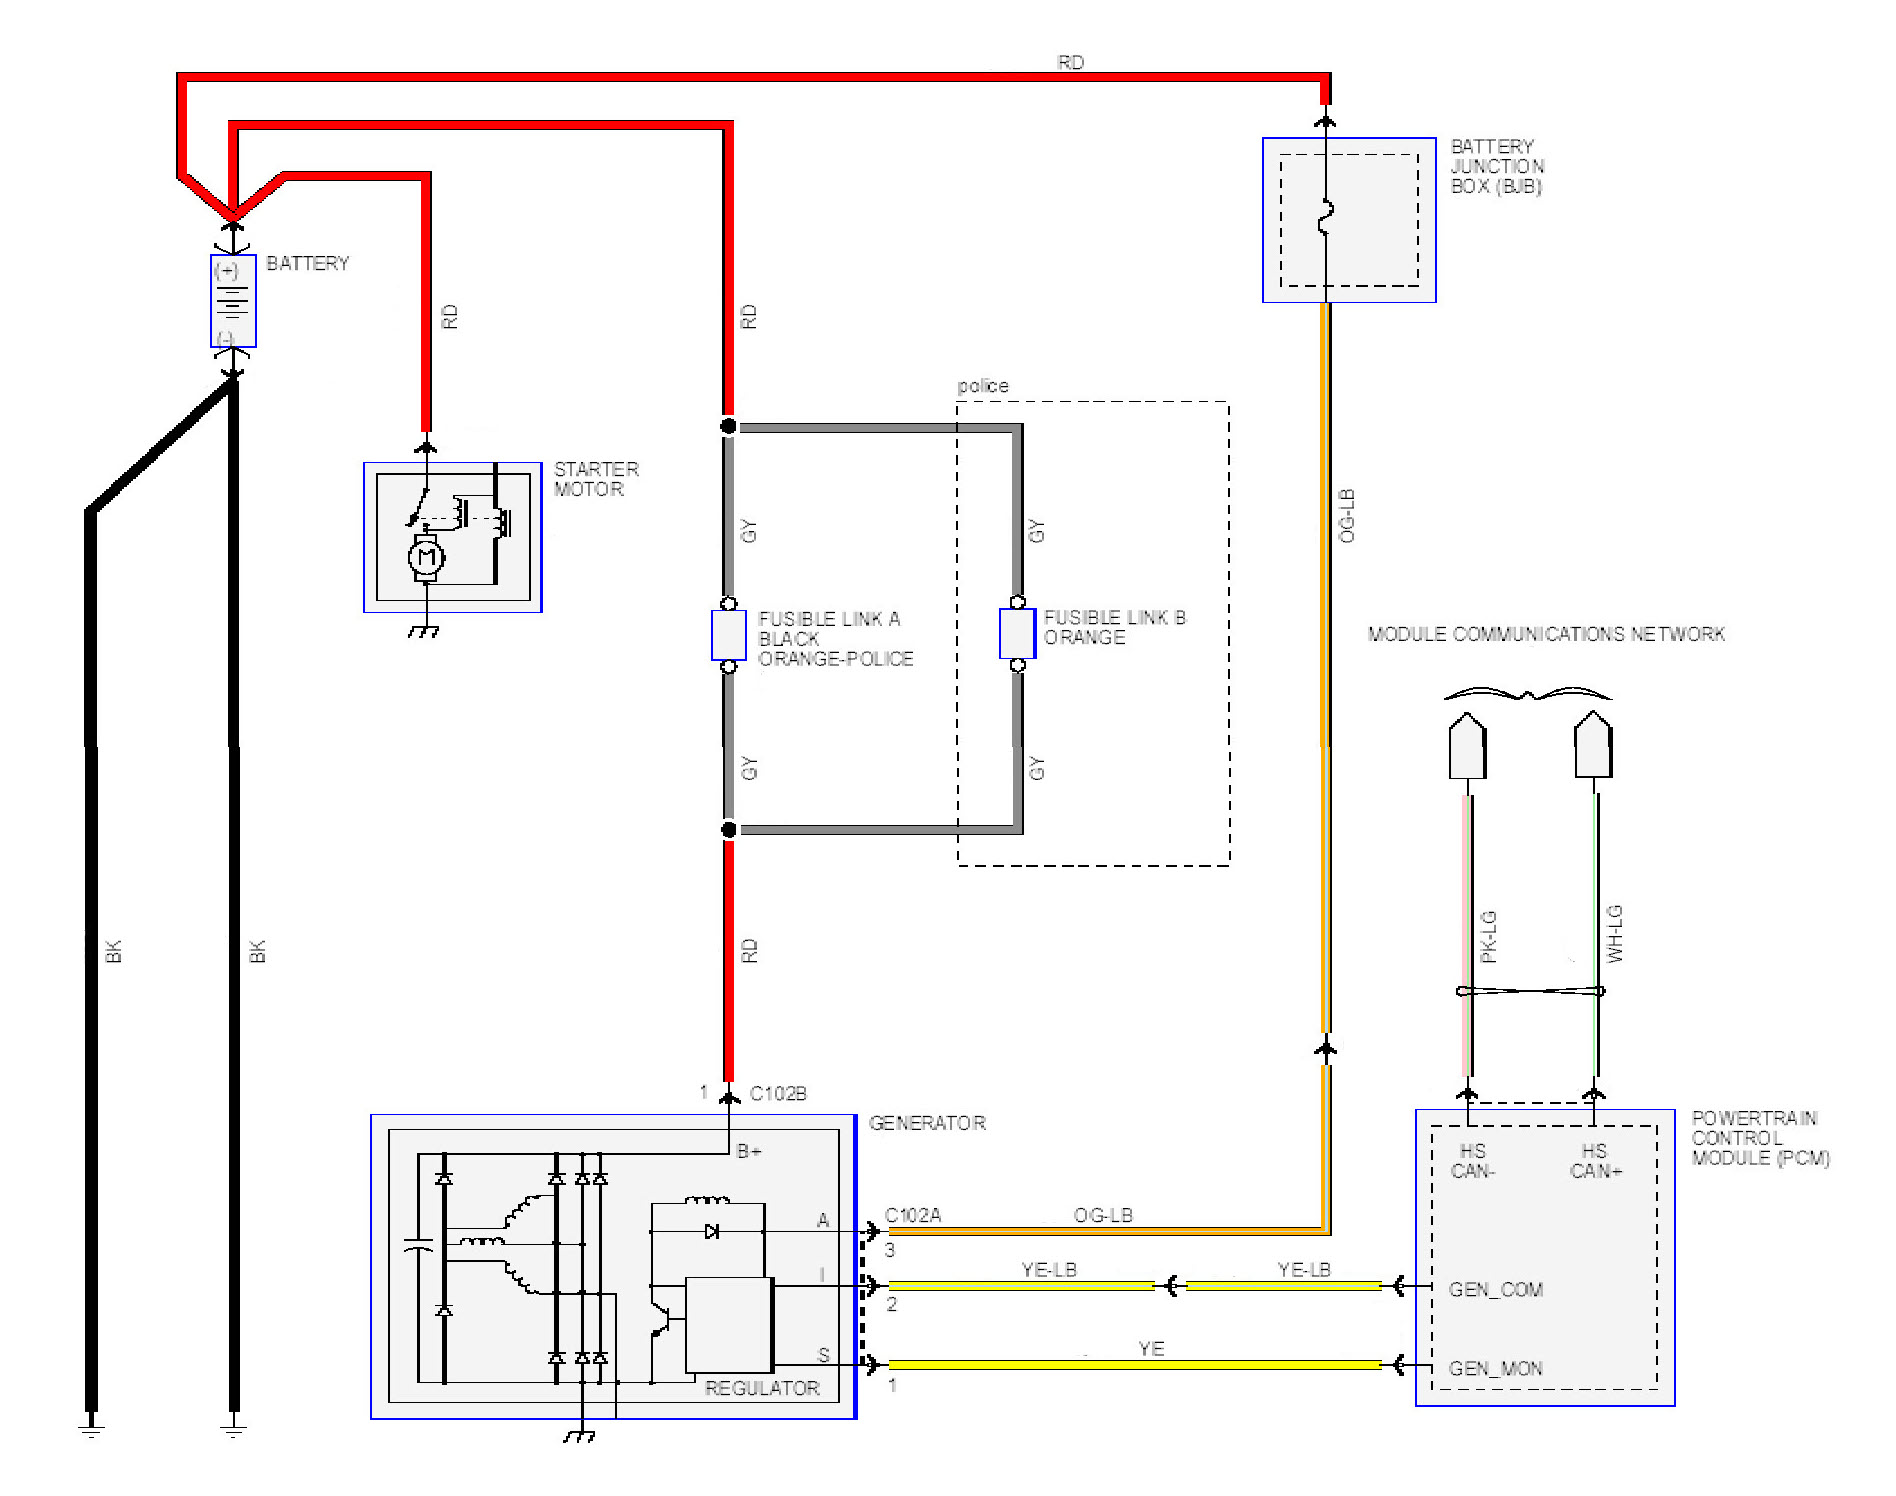 1999 Ford Ranger Wiring Diagram Charging Images Gallery